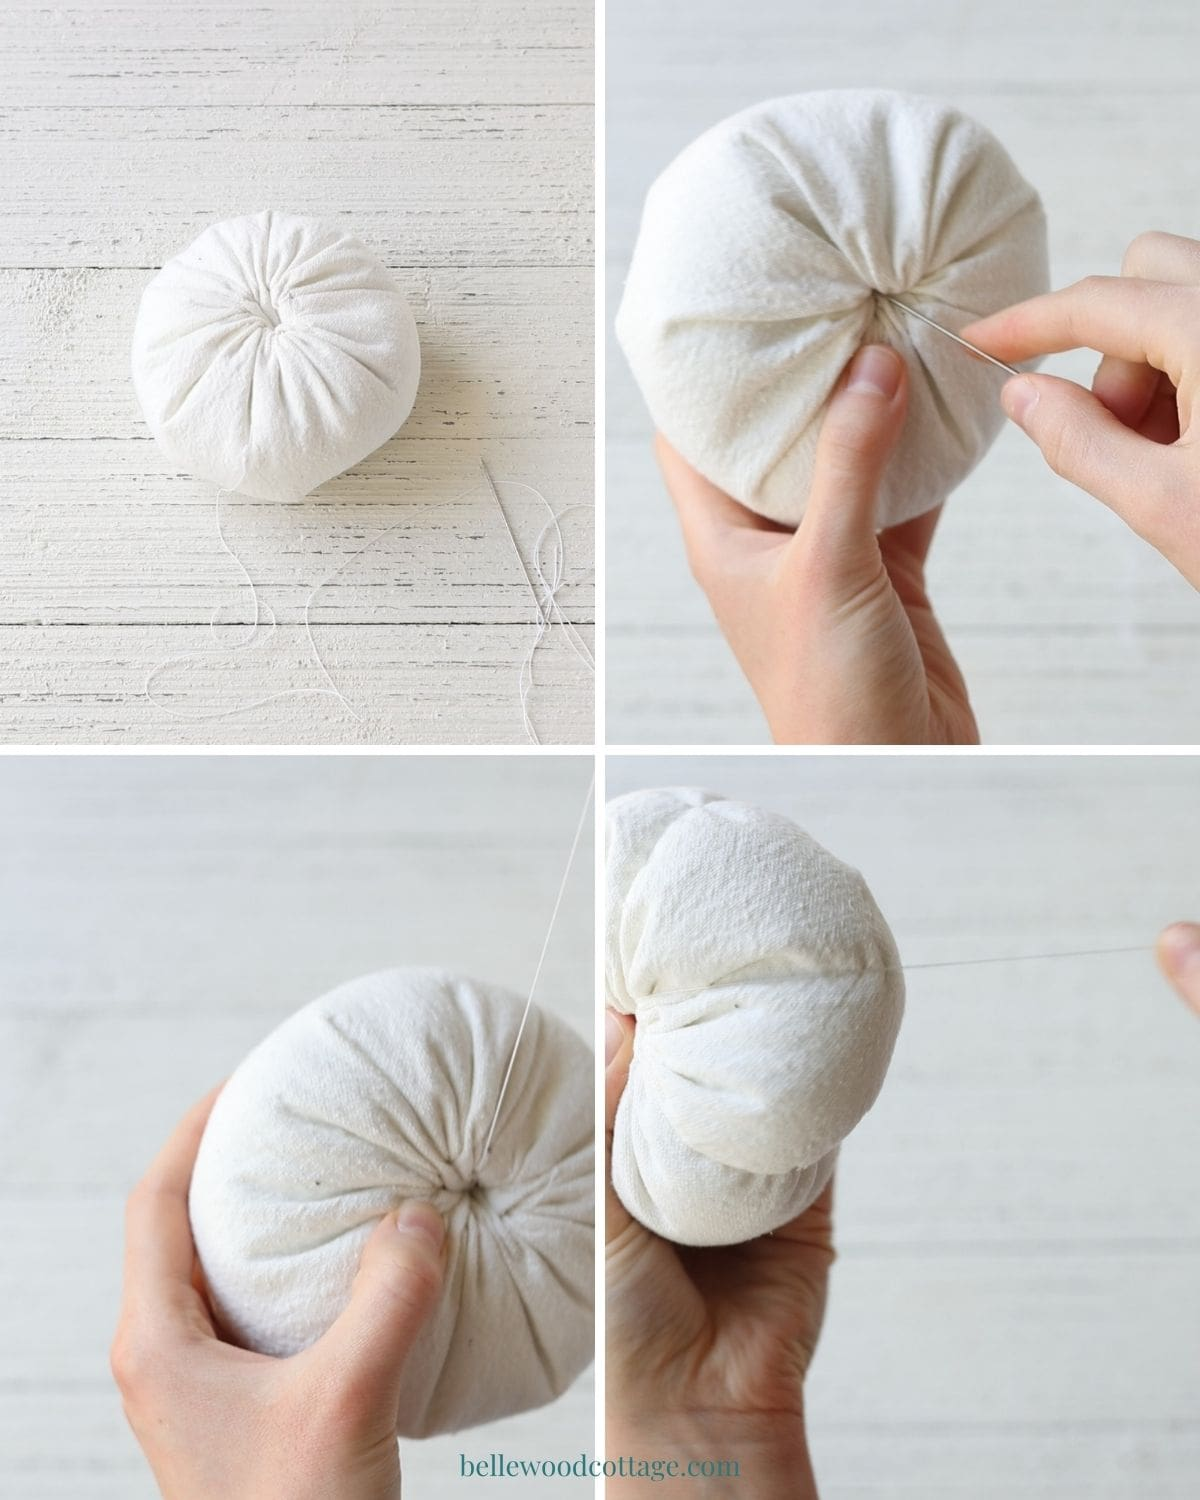 Step by step how to make drop cloth pumpkins - sewing grooves into the pumpkin.